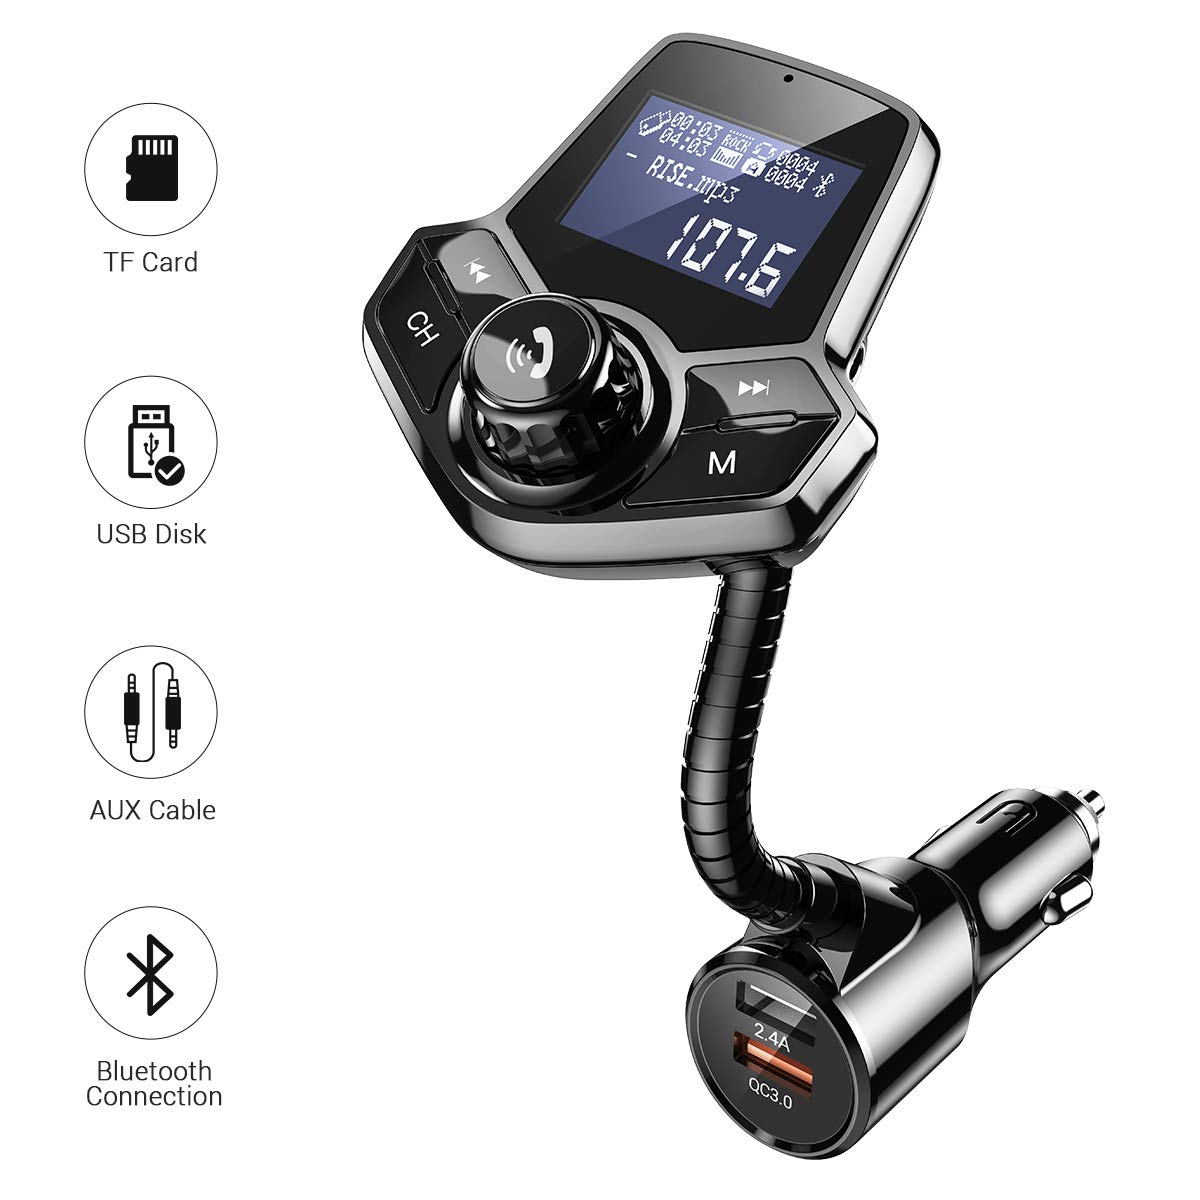 AINOPE Bluetooth FM Transmitter for Car, Upgrade V4.2 Car Radio Bluetooth Adapter with QC3.0 & 2.4A Fast Charging, Hands-Free FM Transmitter Bluetooth for Large Screen Support TF/SD Card, U-Disk by AINOPE (Image #1)